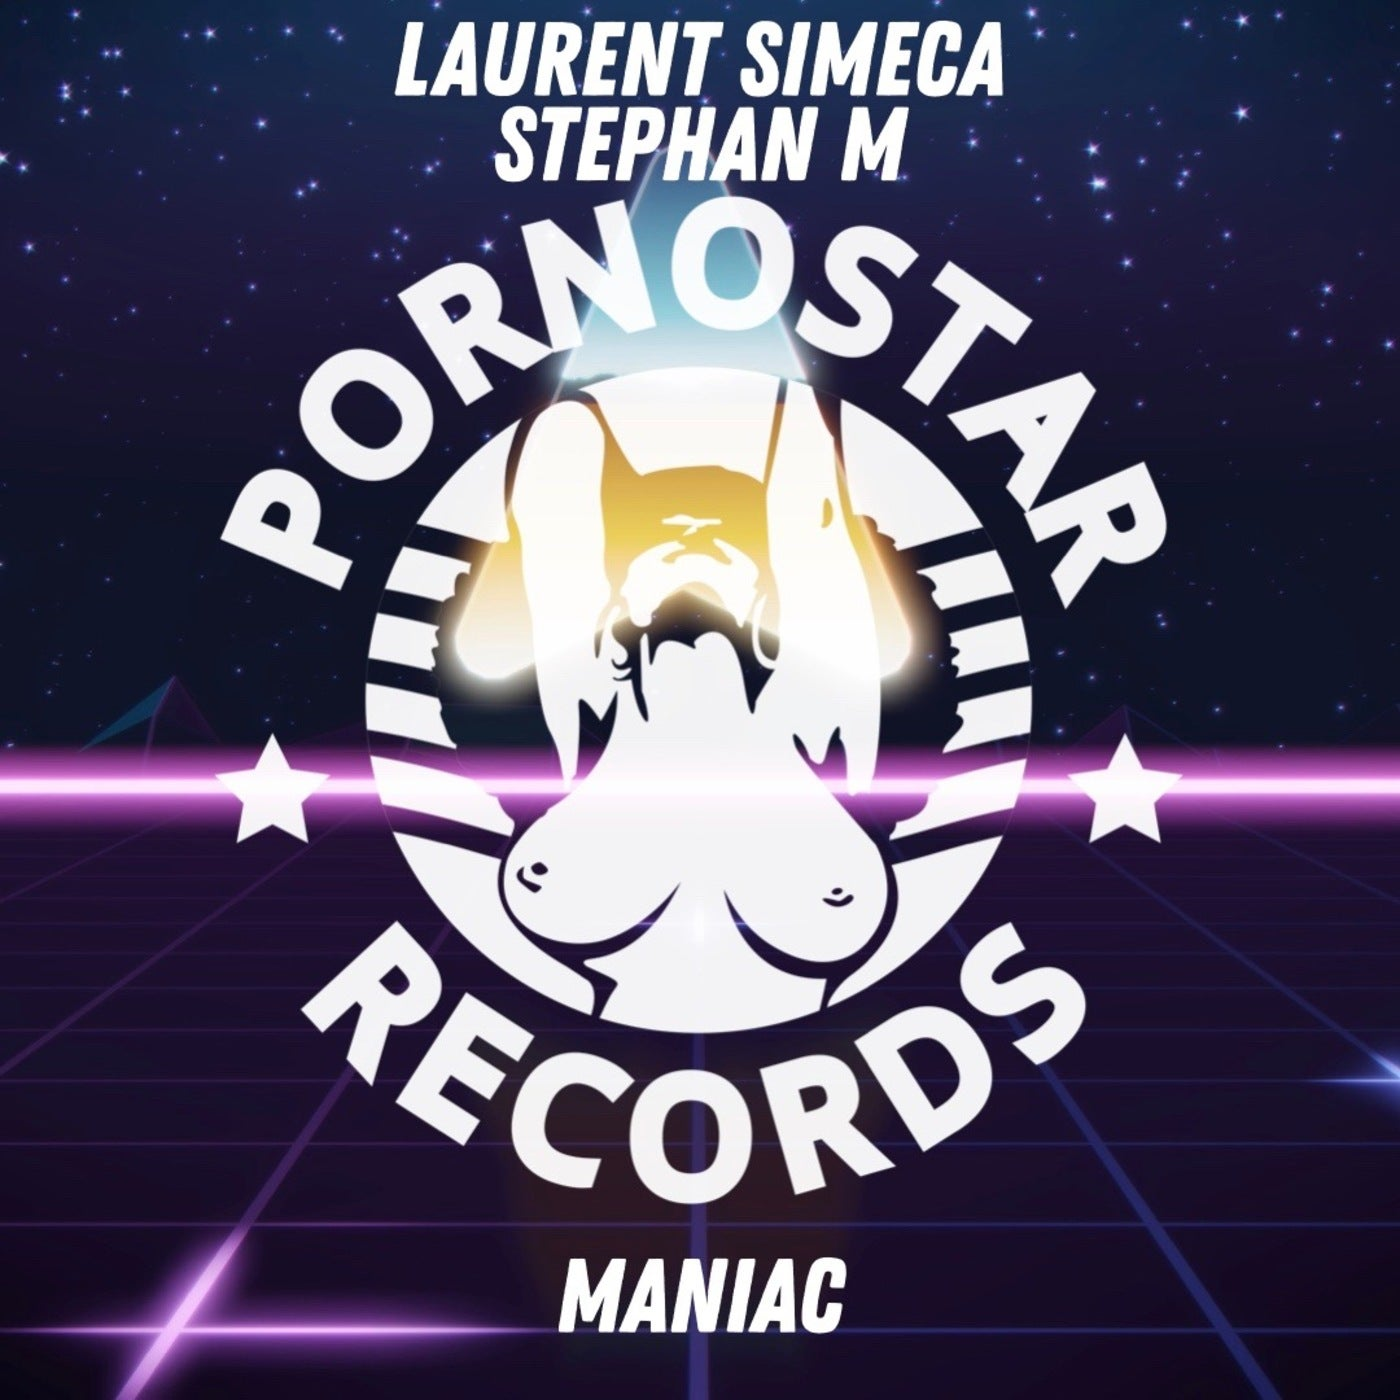 Laurent Simeca & Stephan M - Maniac (Original Mix)